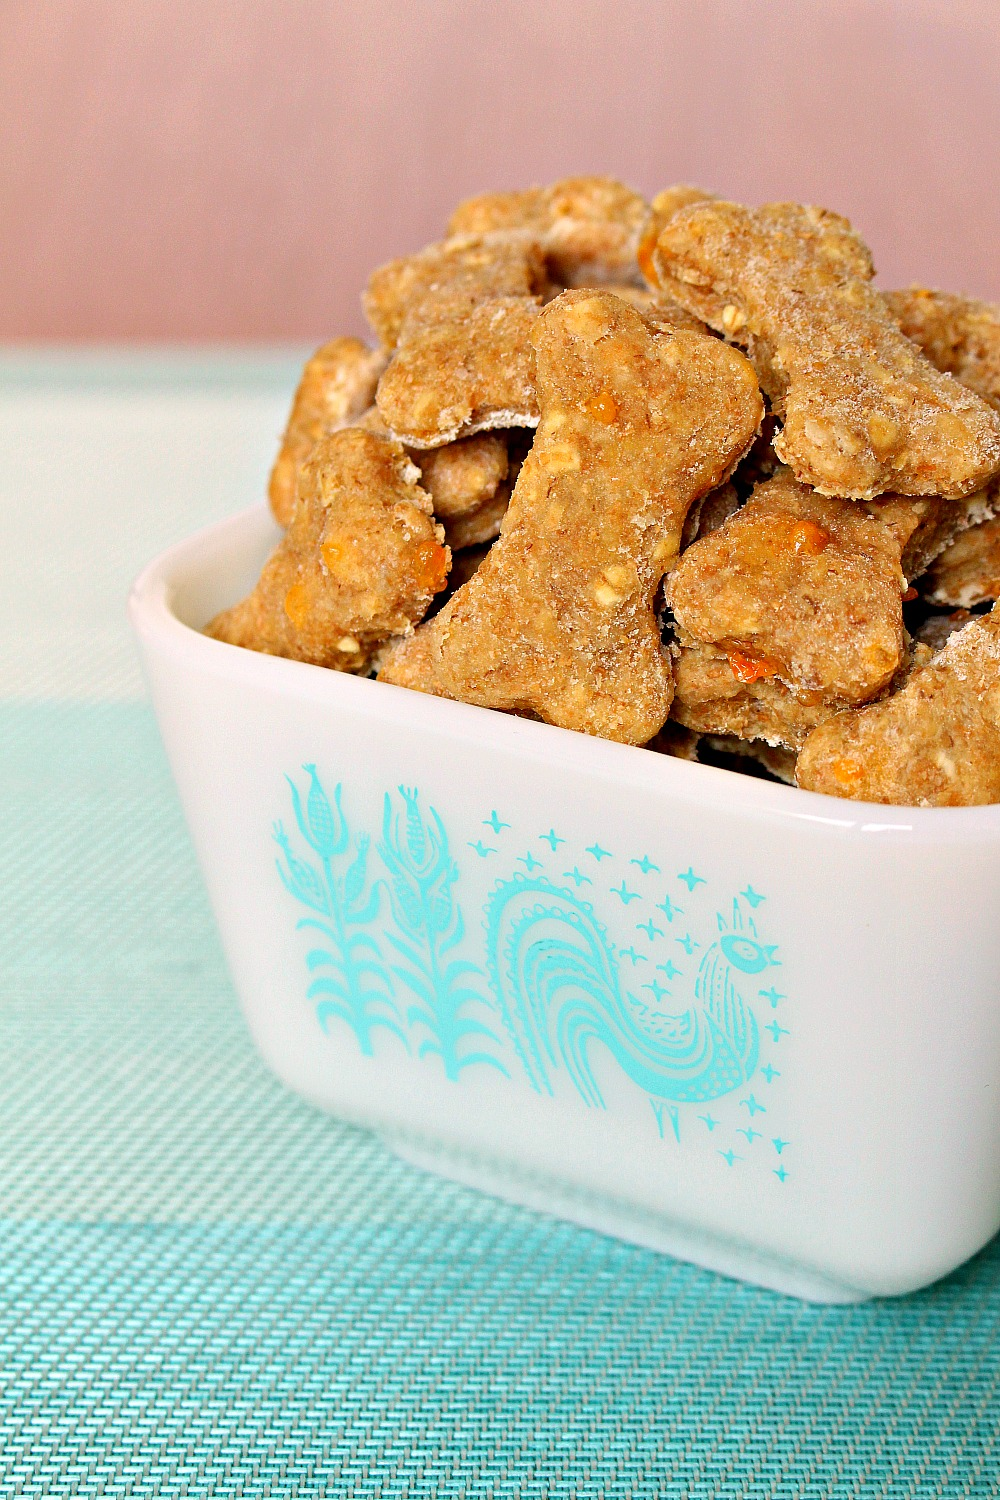 How to Make Homemade Dog Treats